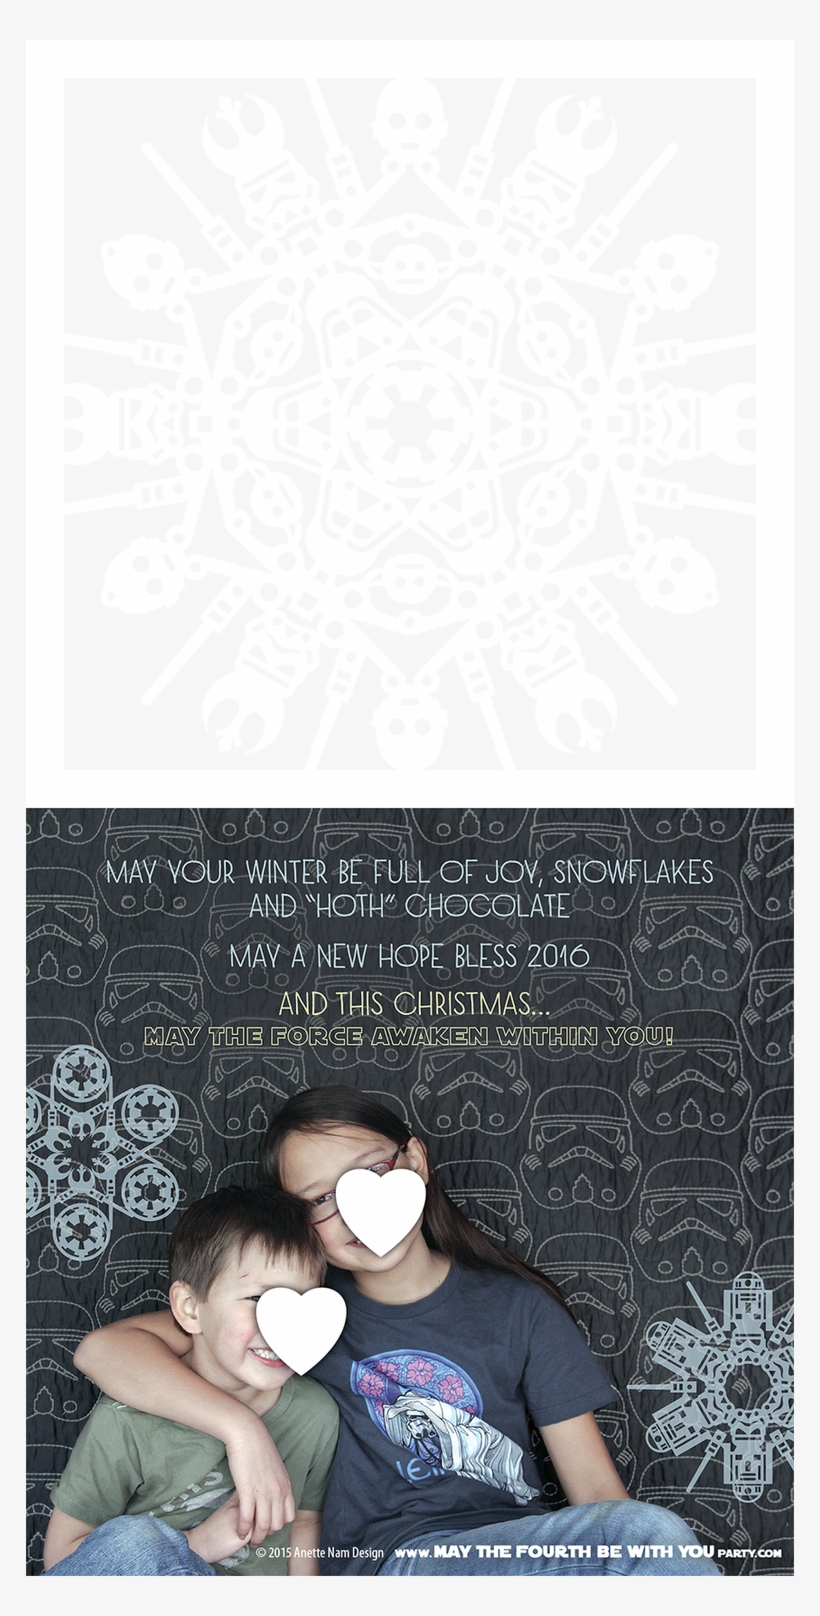 Star Wars Themed Christmas Card With Star Wars Snowflakes - Star Wars, transparent png #5522068